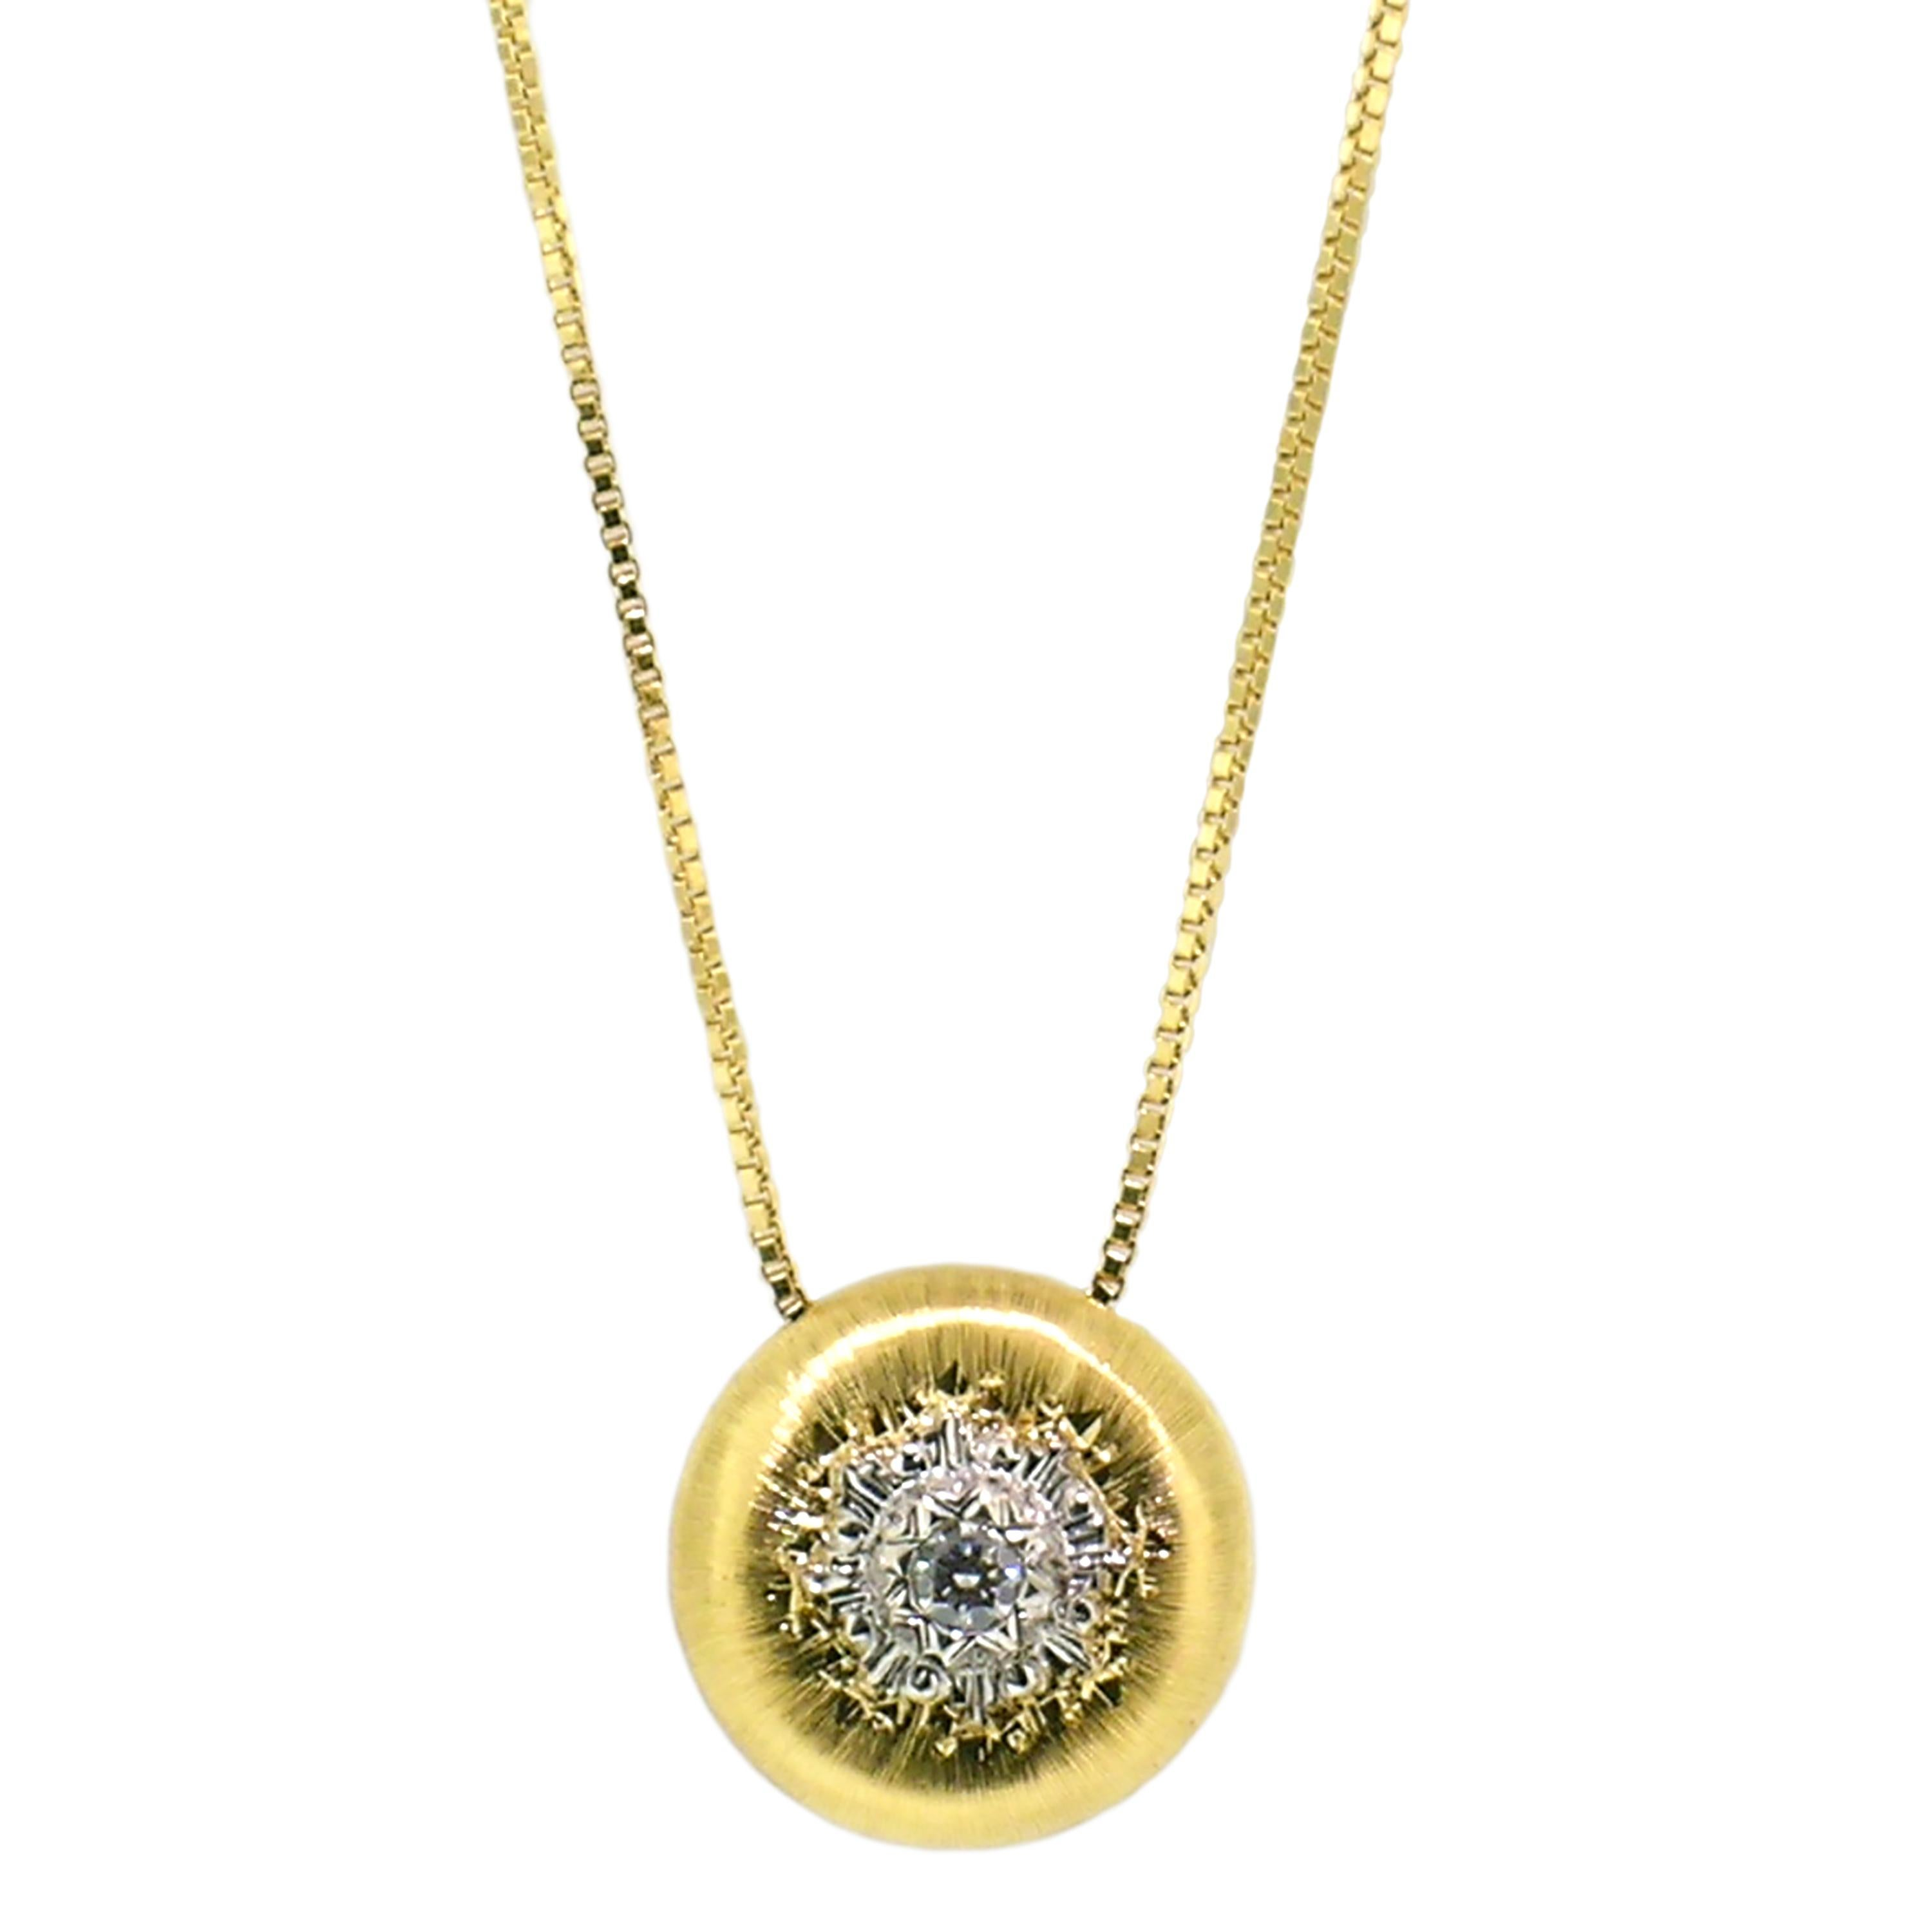 18kt Gold and Diamond Pendant Necklace, Handmade and Hand Engraved in Italy